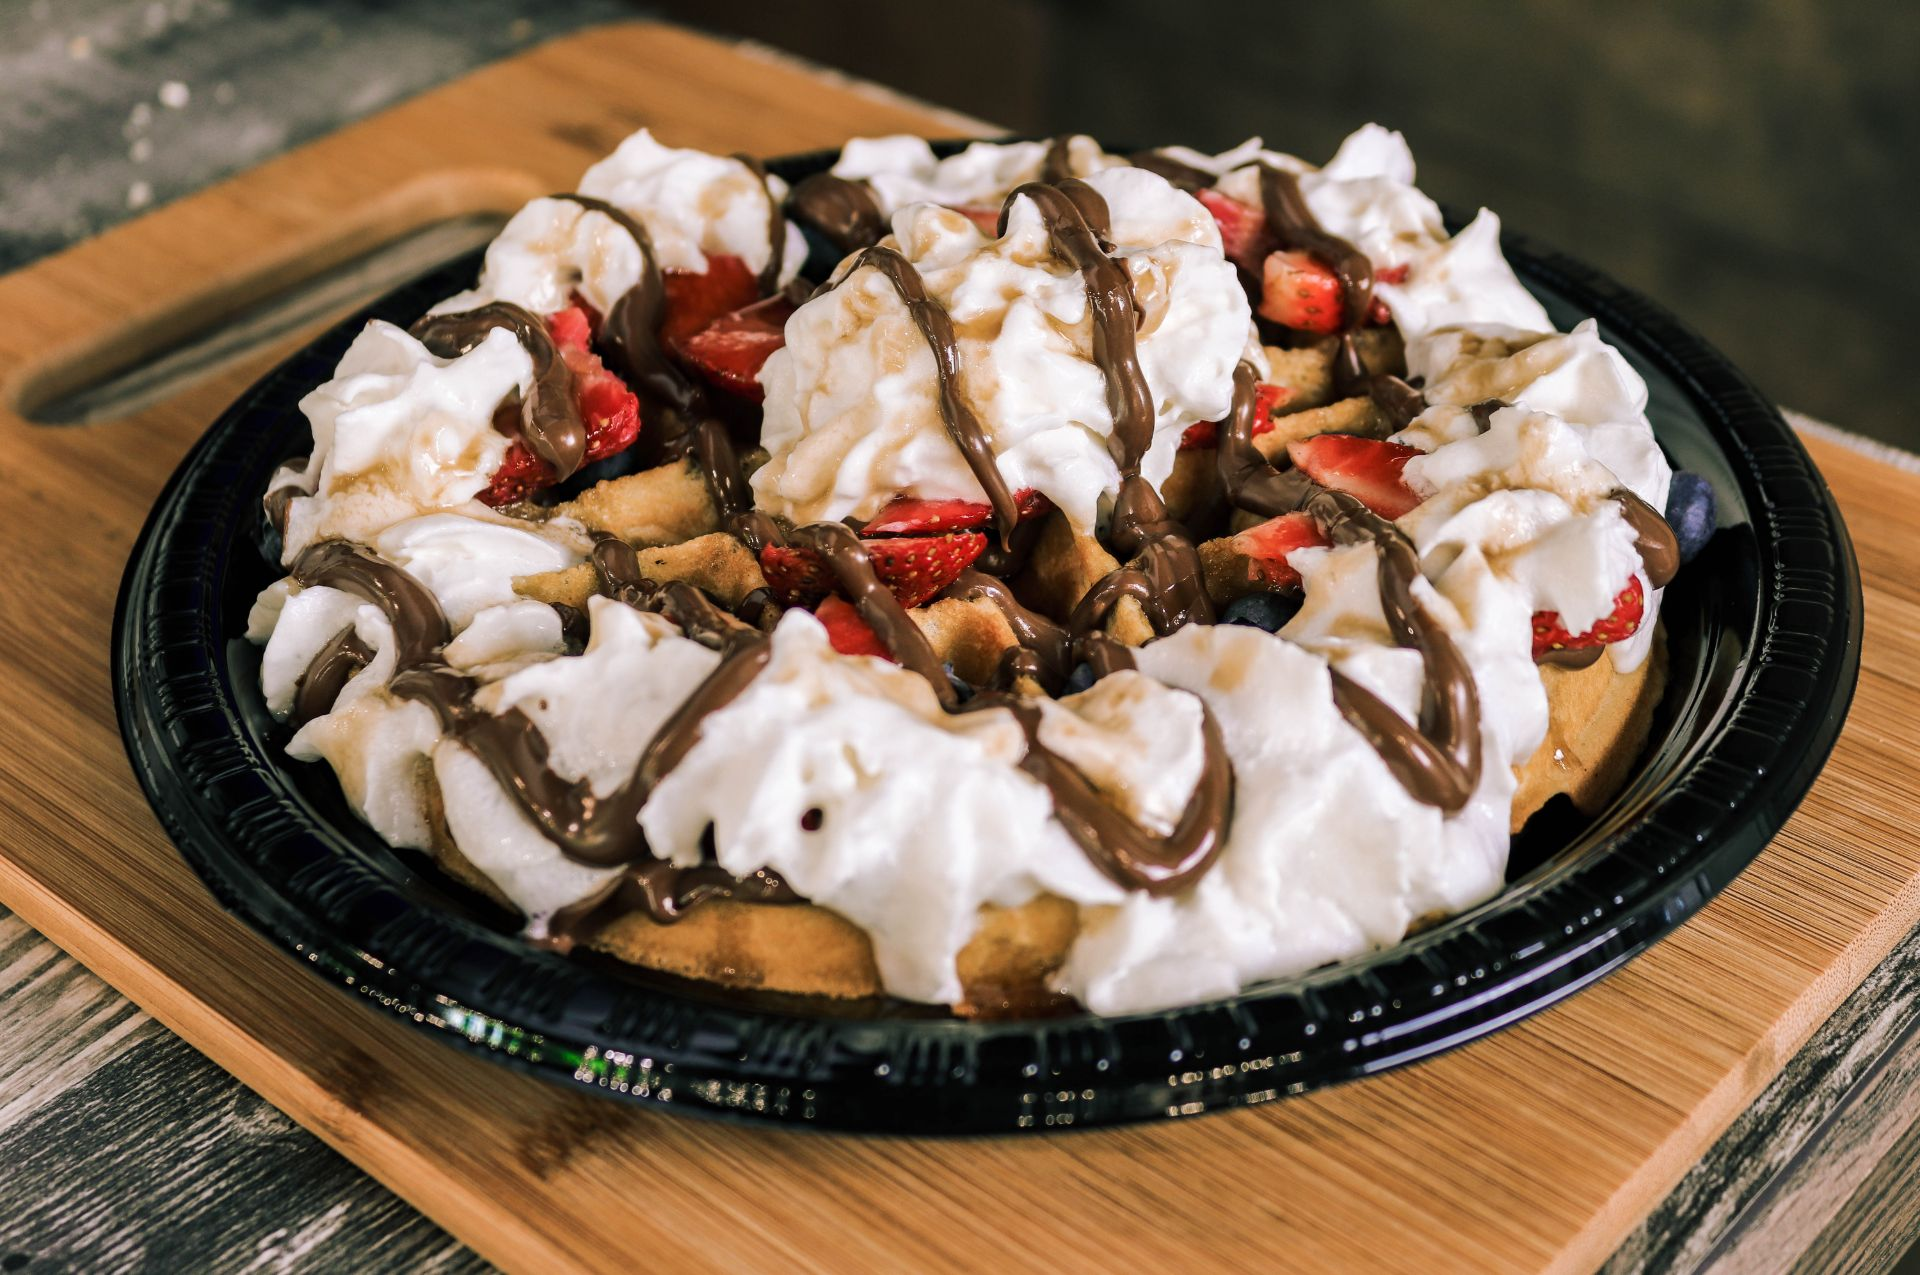 Belgian waffle with whipped cream, fresh fruits and chocolate sauce